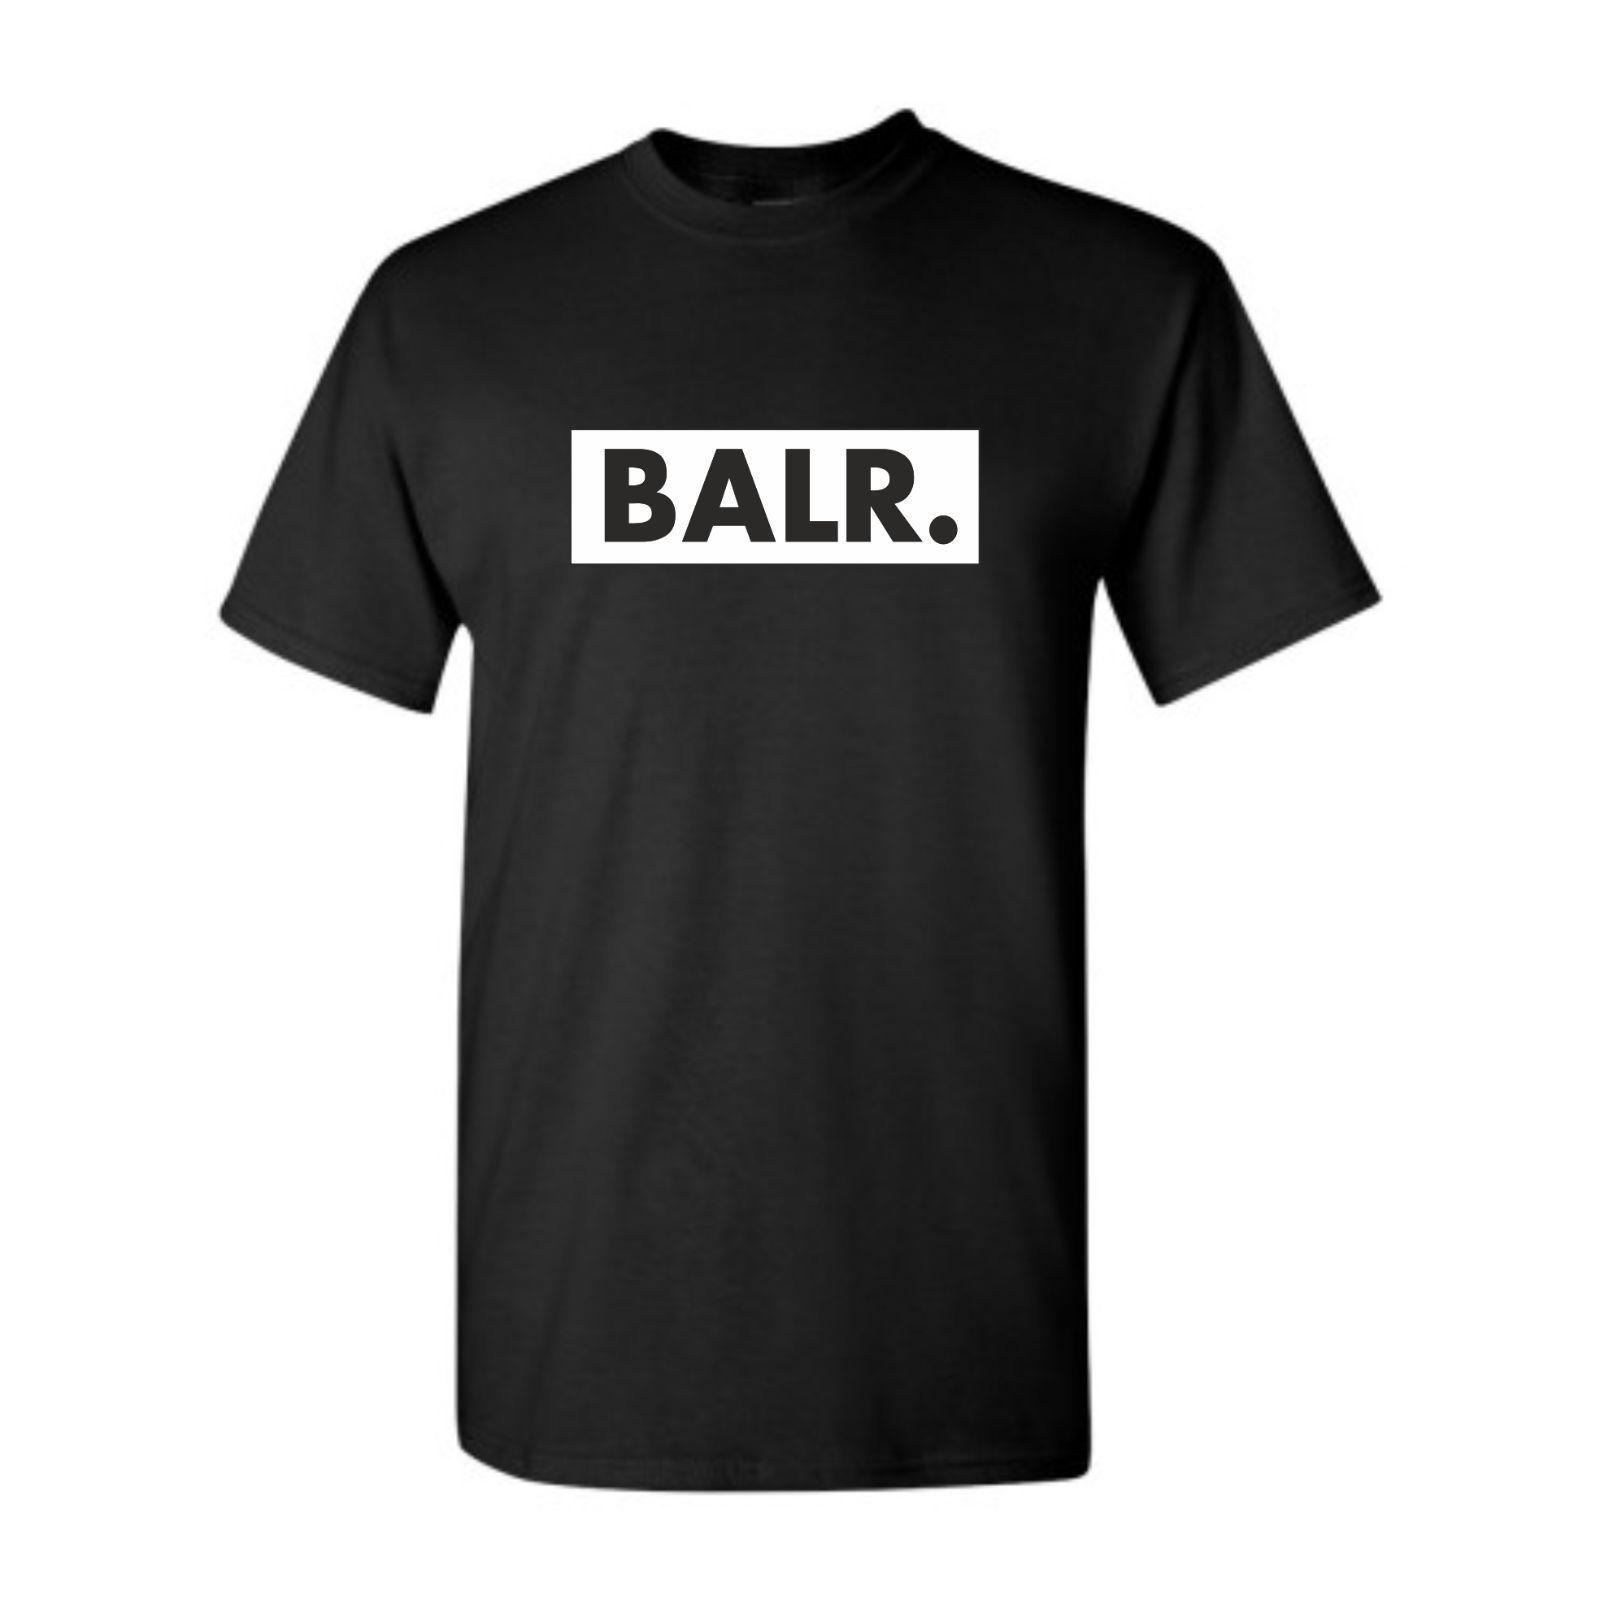 buy funny shirts online